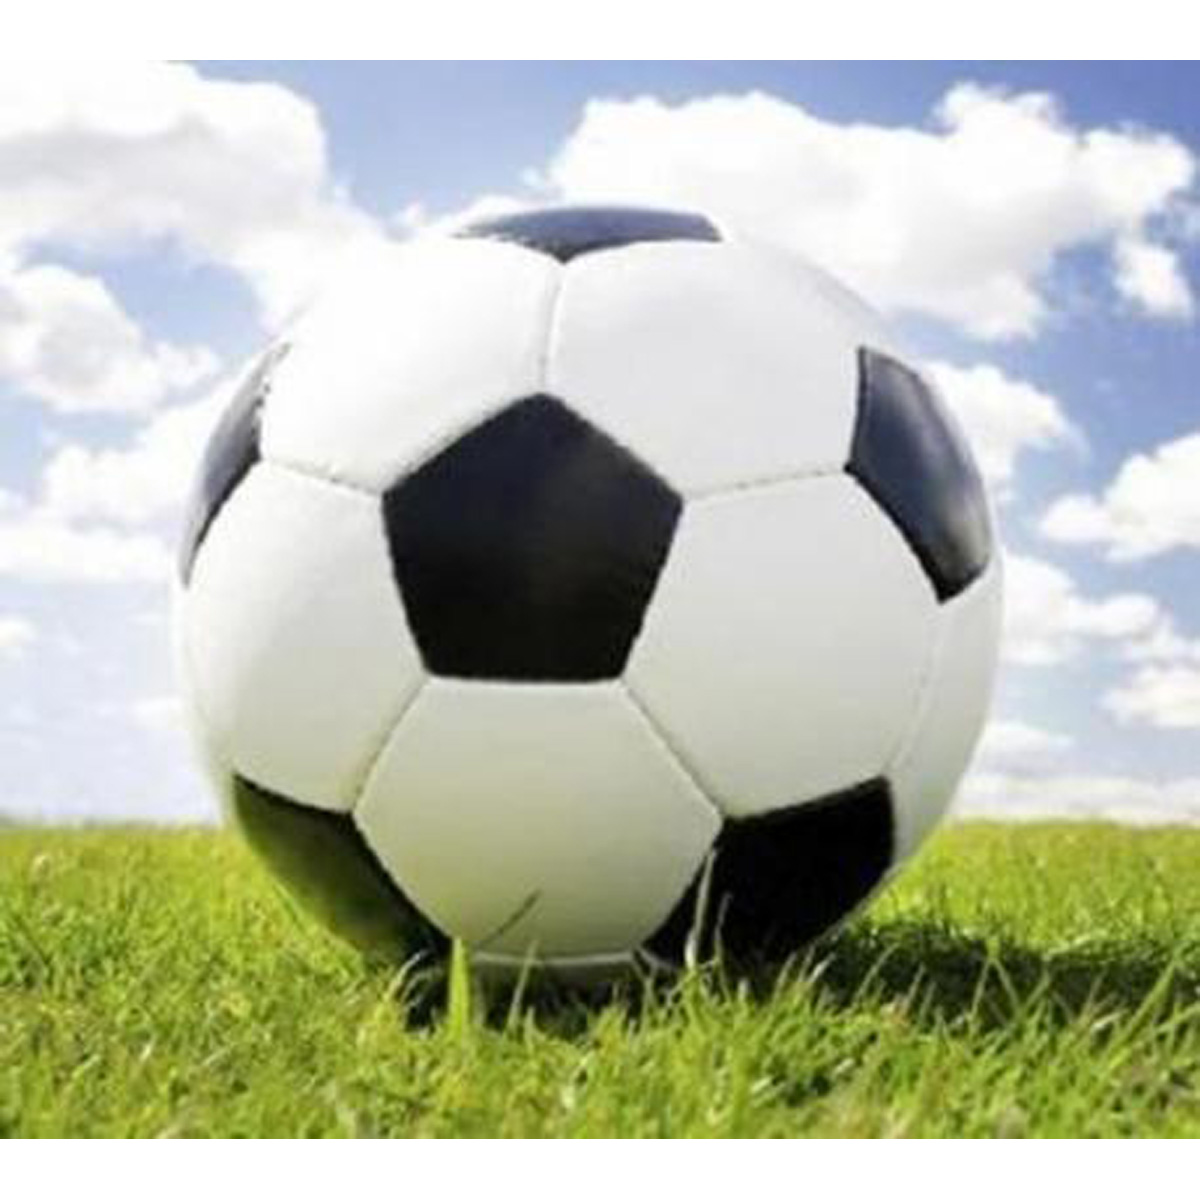 West Riding County Amateur League round-up